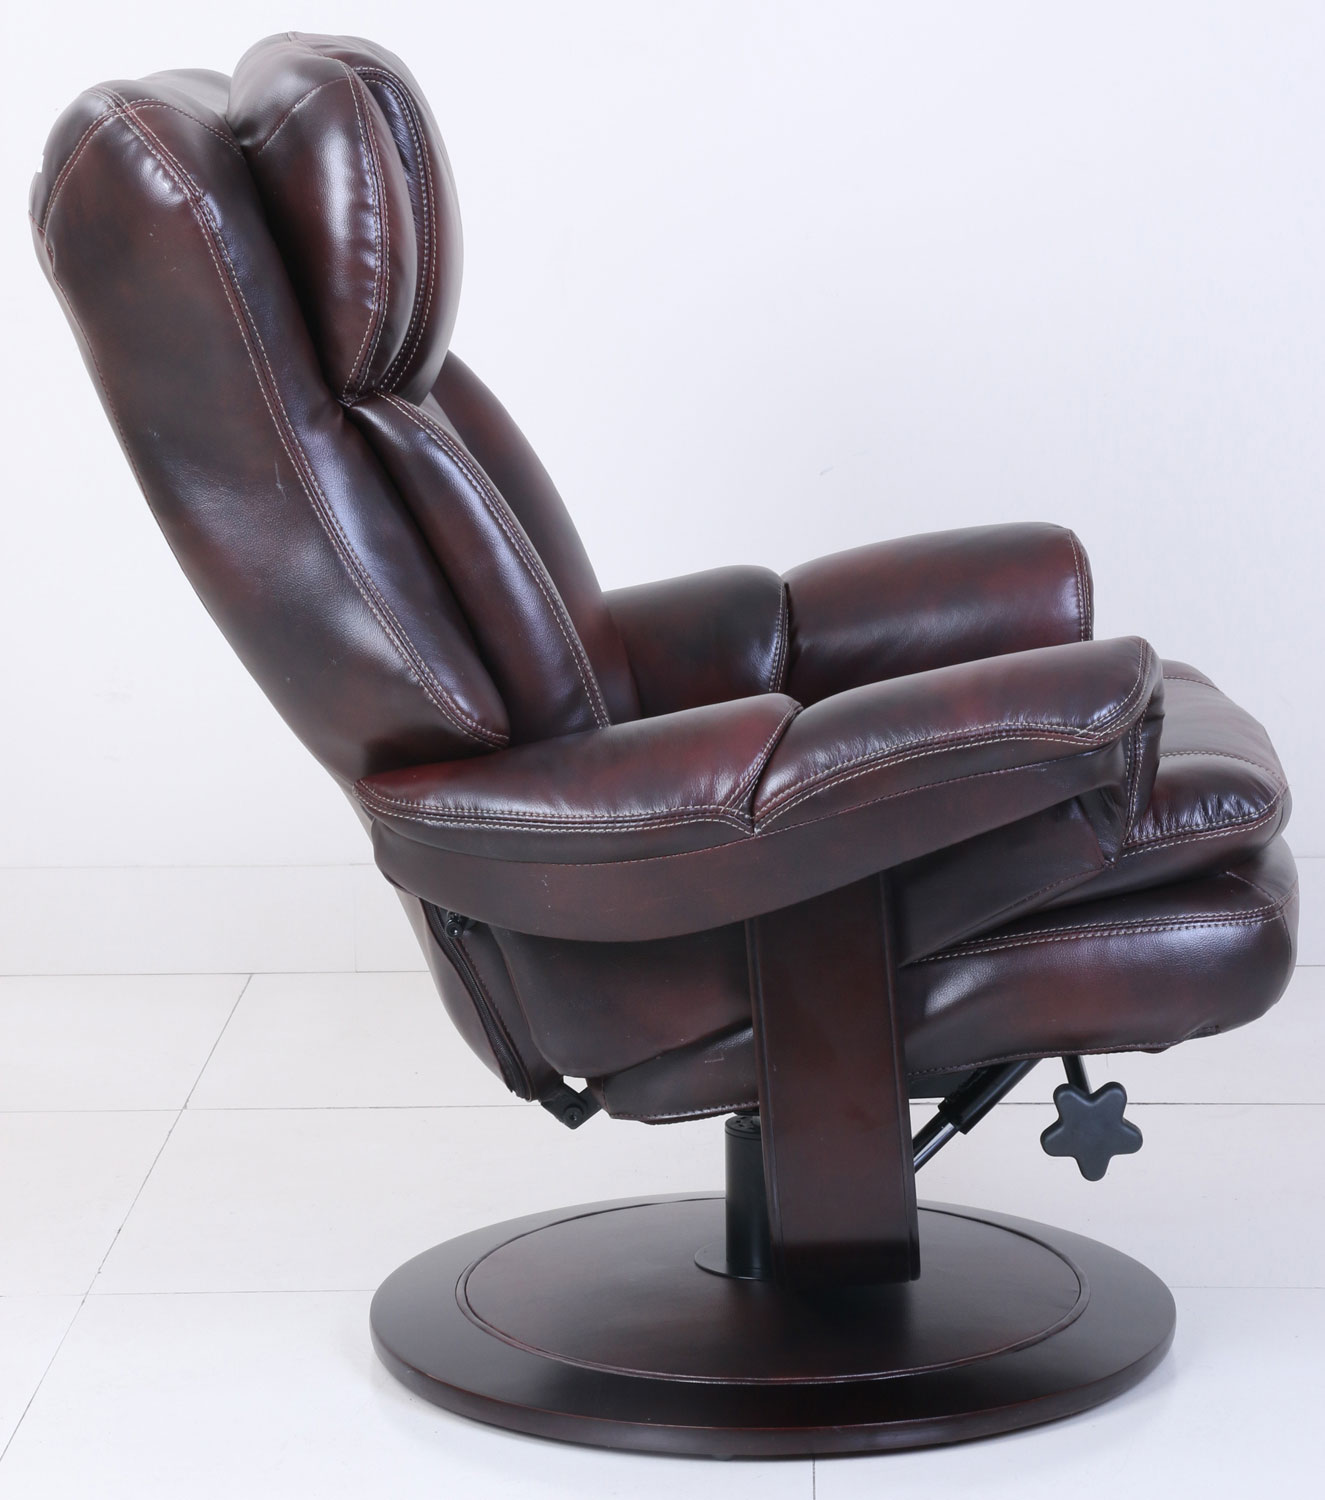 Barcalounger Roscoe Pedestal Recliner Chair and Ottoman - Plymouth Mahogany/Leather Match